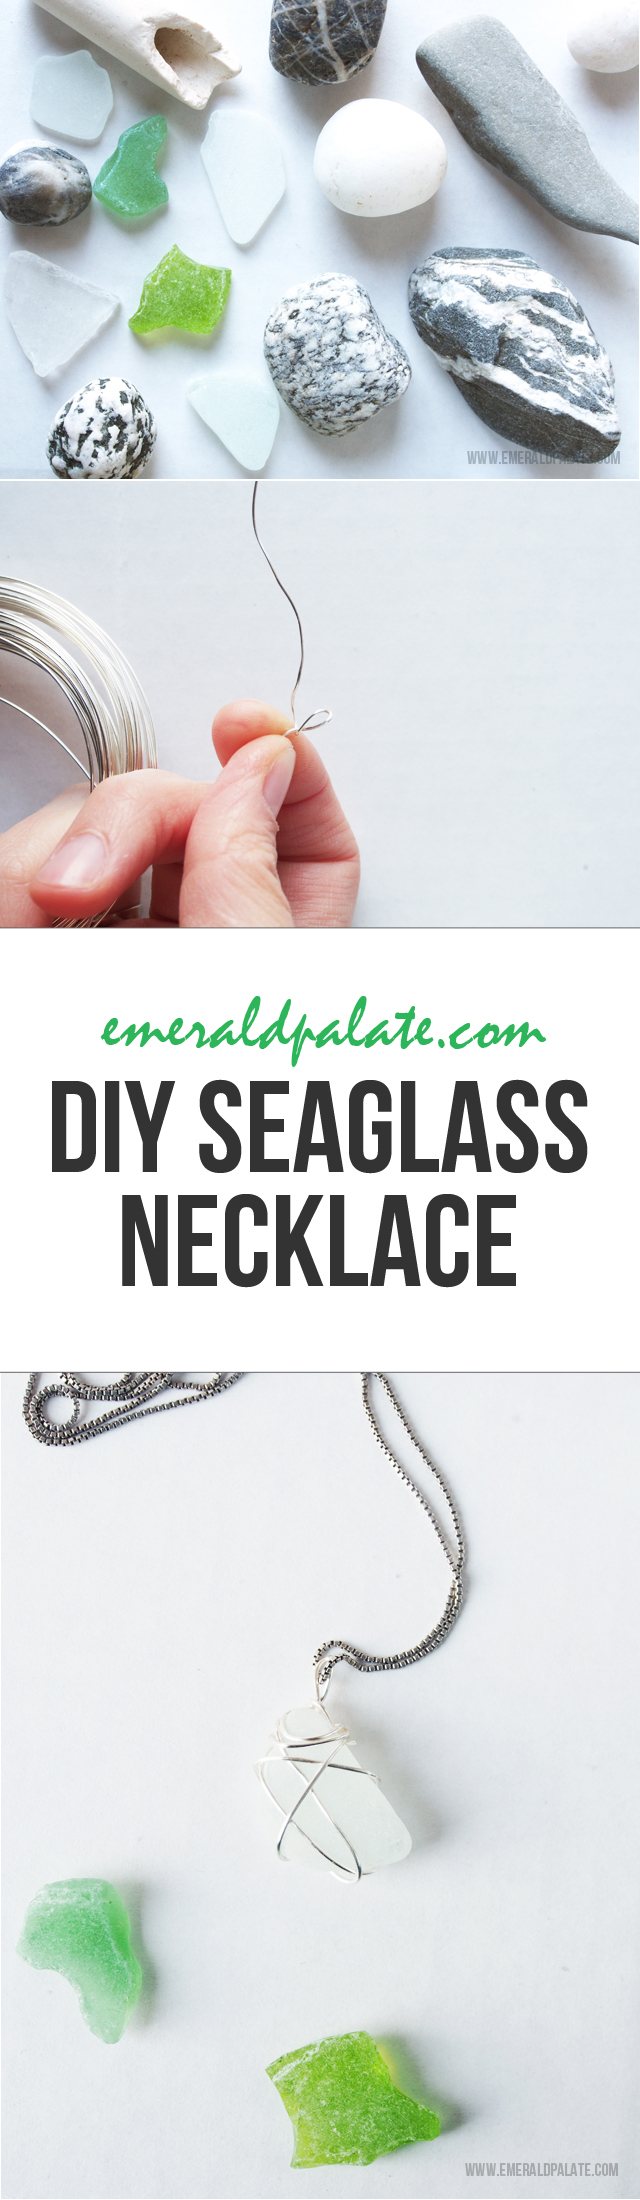 An easy and affordable DIY necklace made with sea glass and stones found on the beach. All you need is wire, scissors, tweezers, and the stone or sea glass you want to wrap!